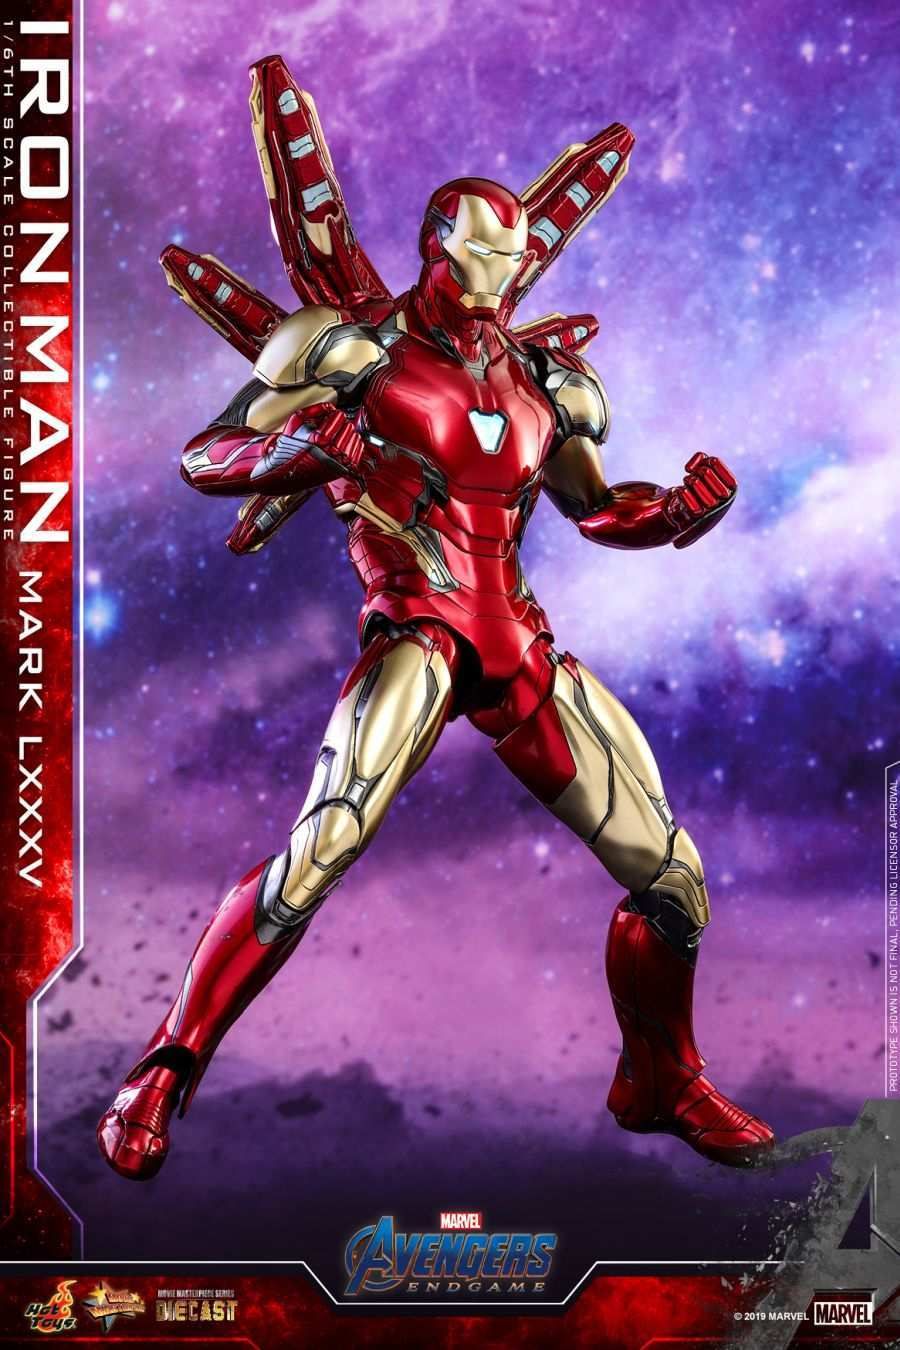 Iron man mark lxxxv armor for 39 avengers endgame 39 detailed look revealed by hot toys - Image de iron man ...